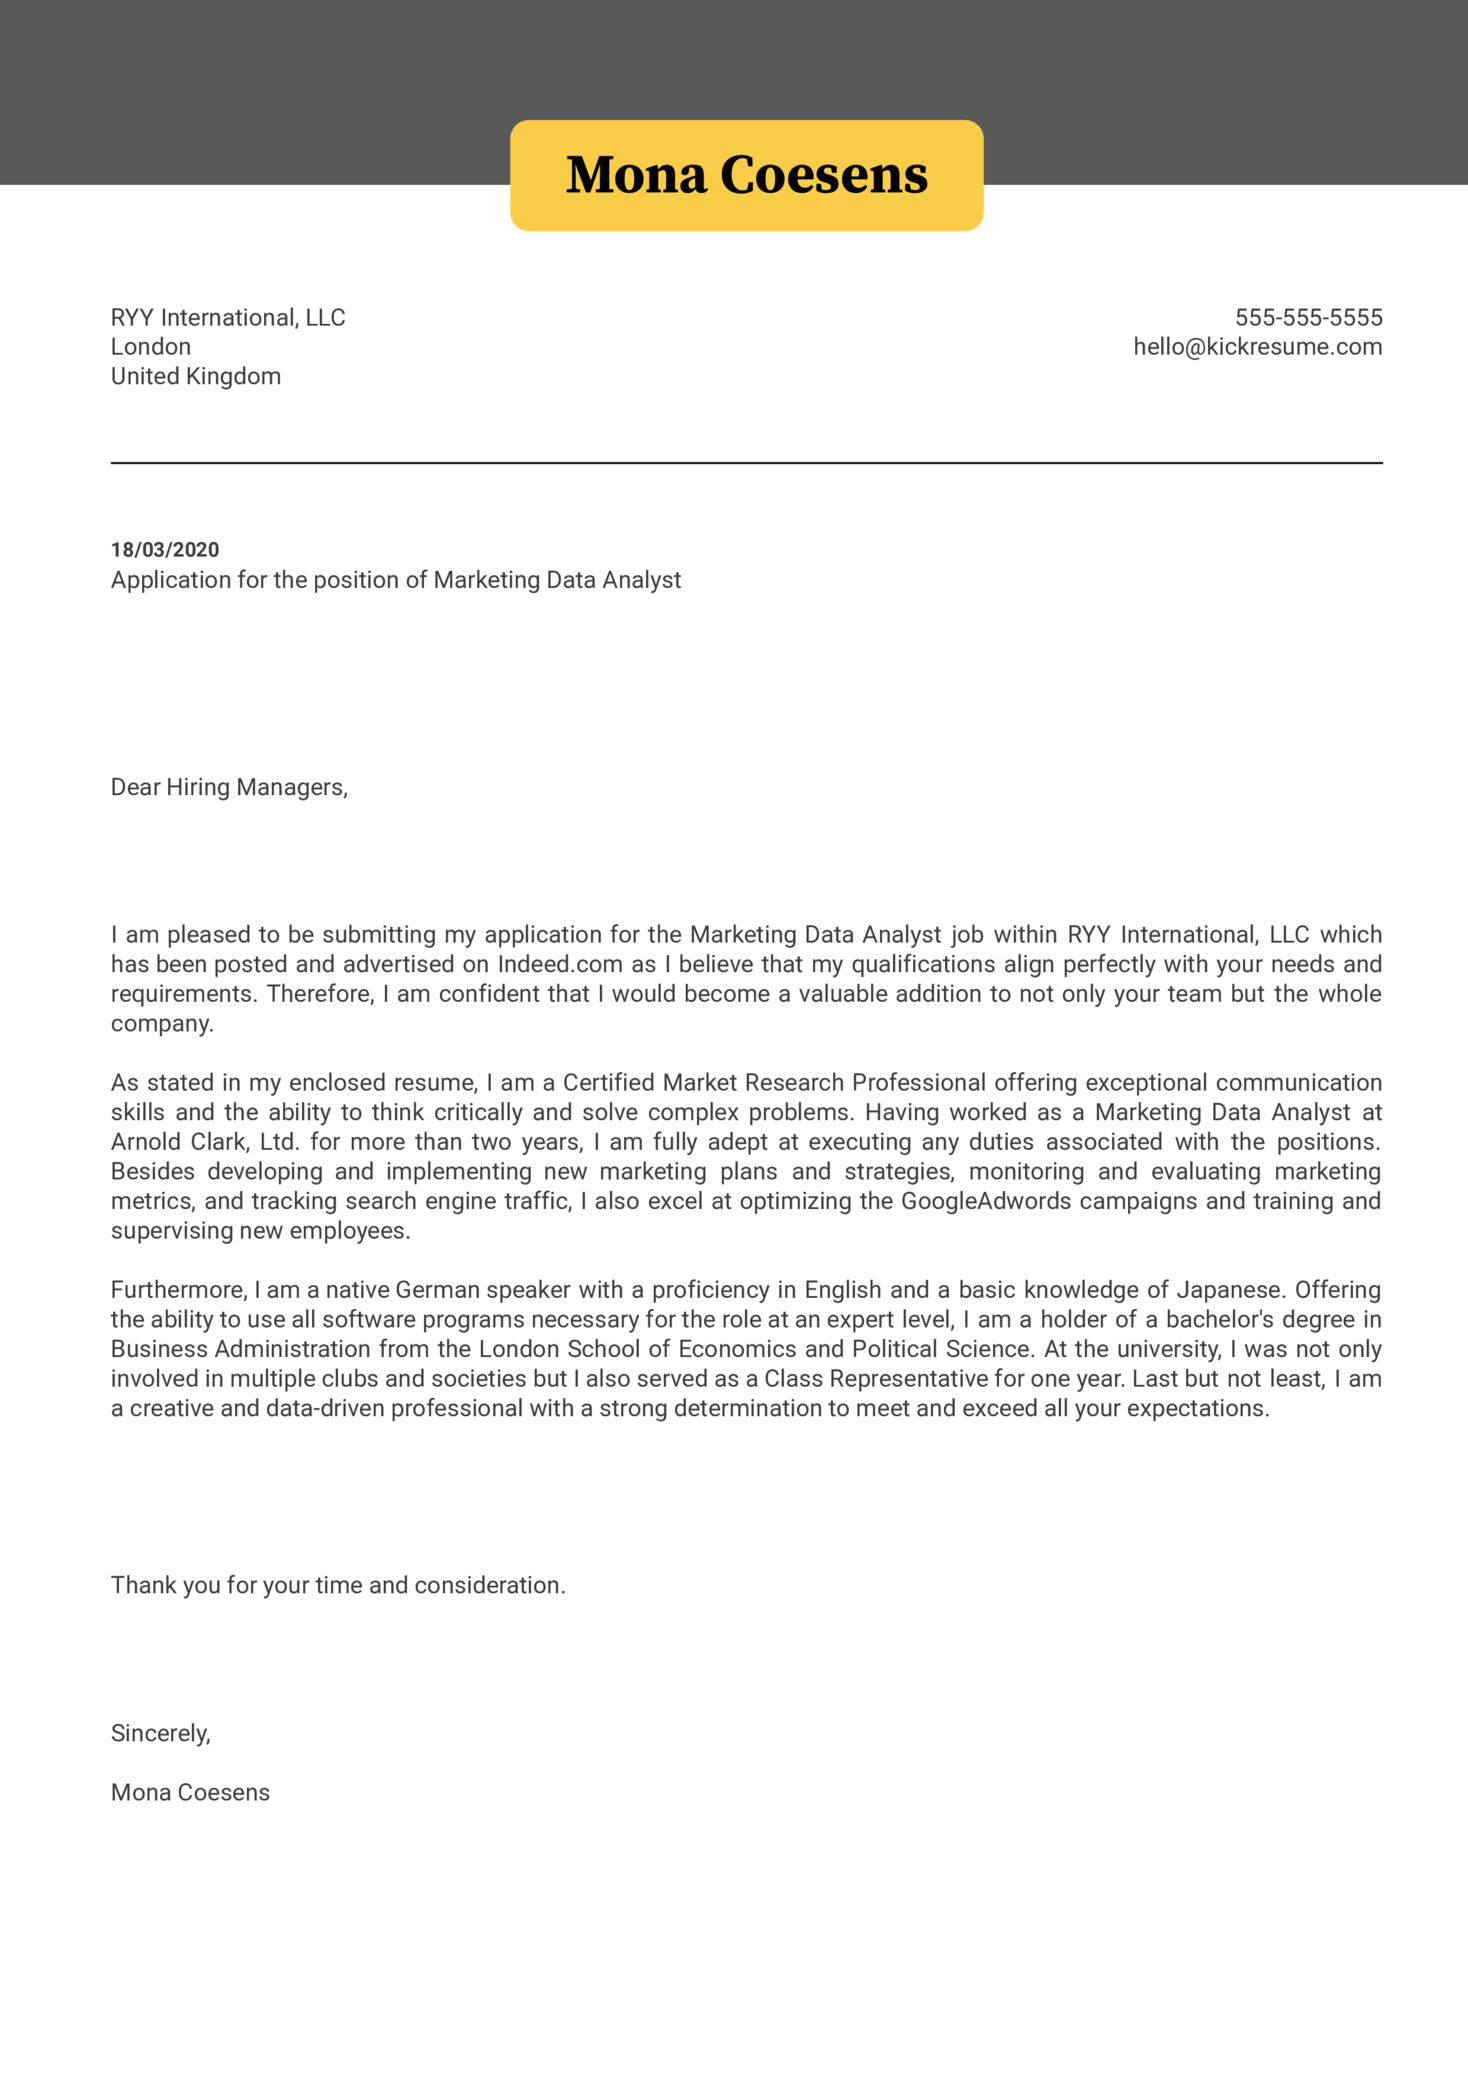 Marketing Data Analyst Cover Letter Example